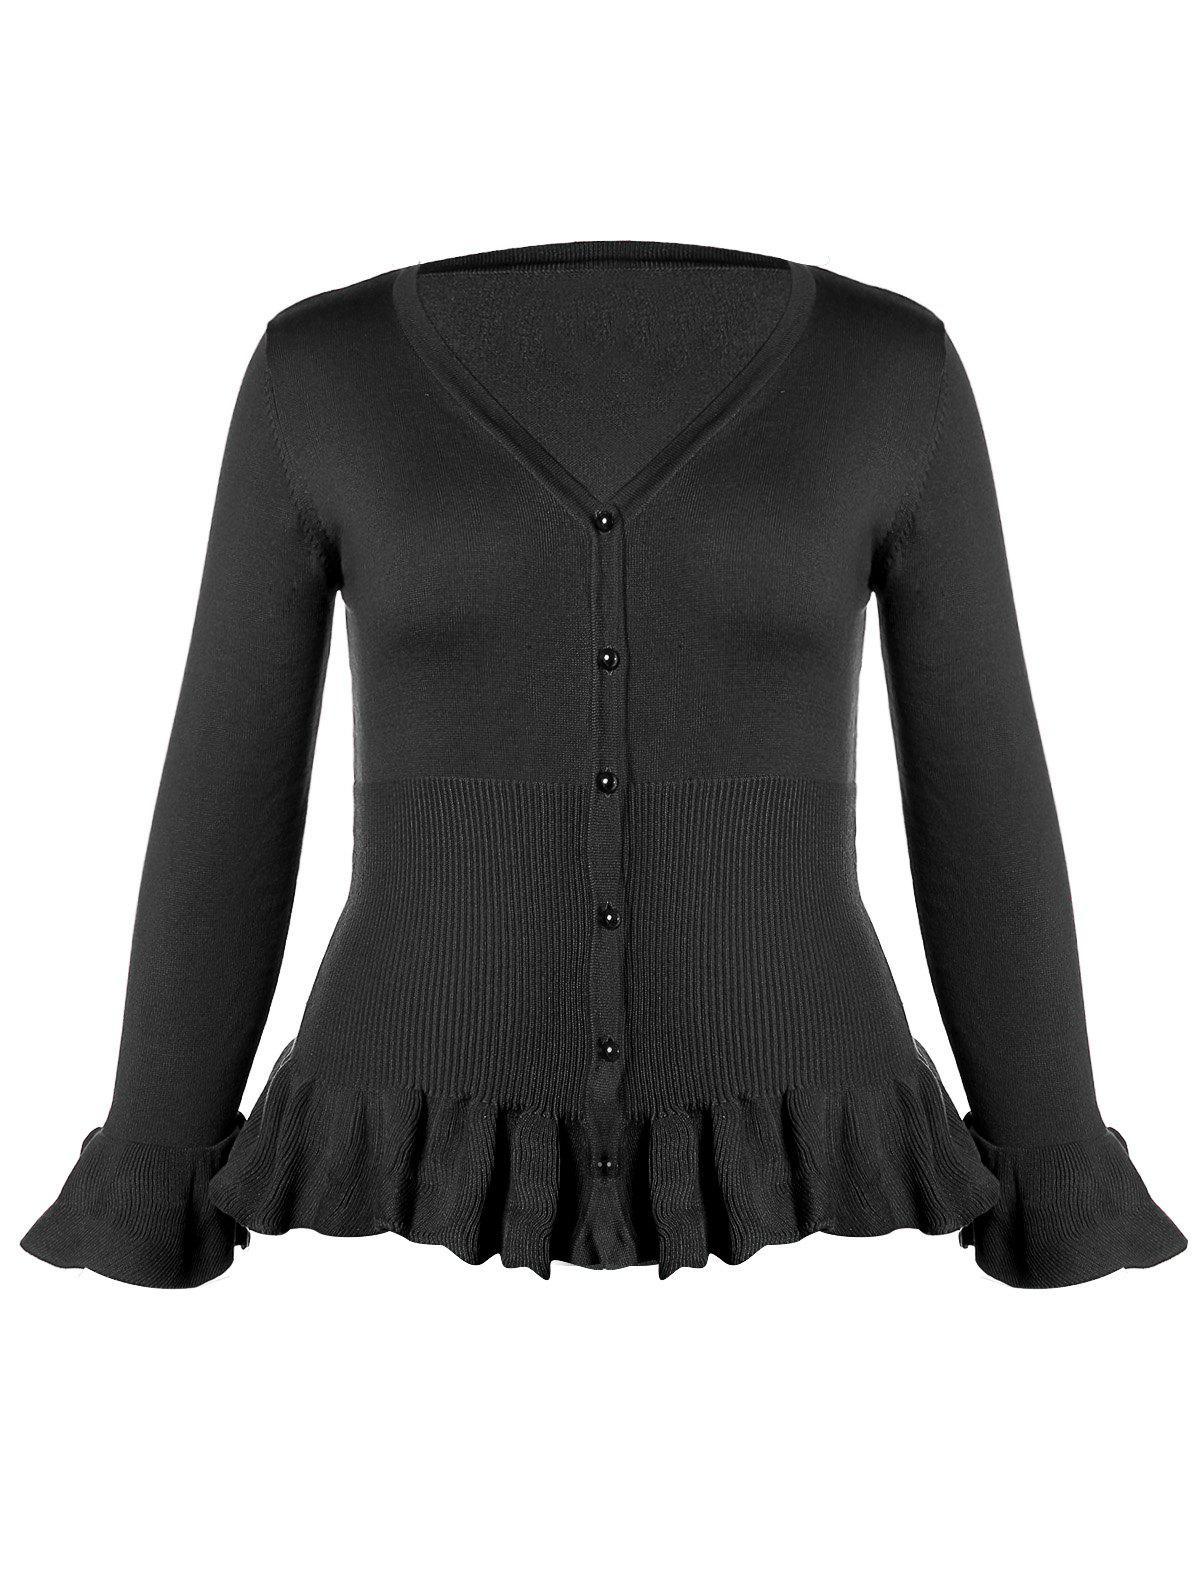 Plus Size Ruffled Button Knit Cardigan - BLACK 3XL